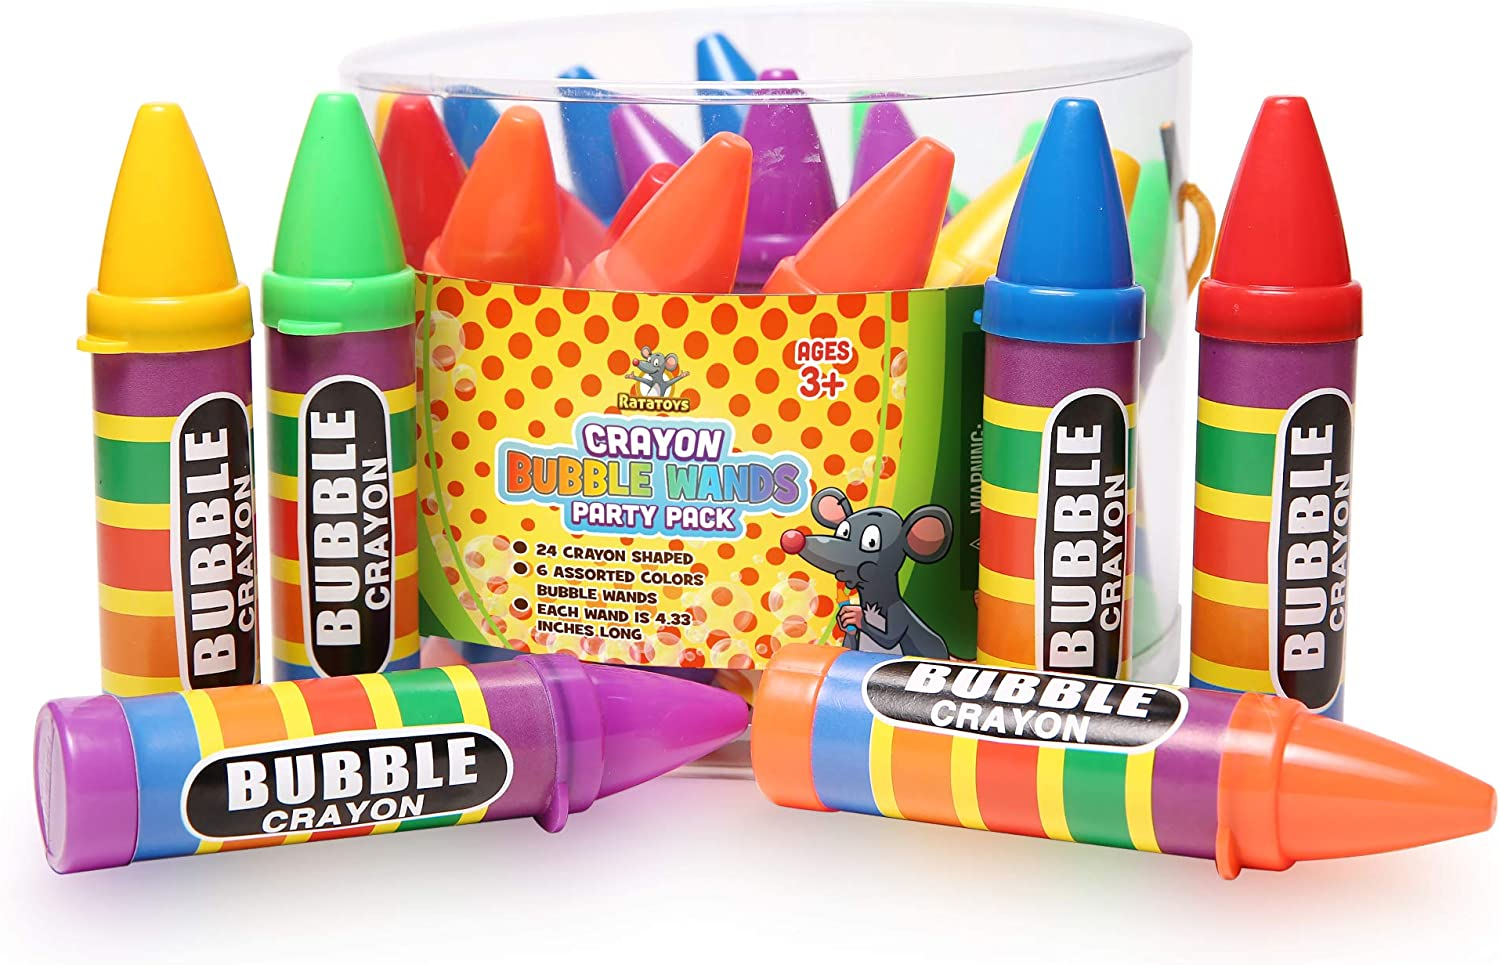 Snail Party Garden Party Snail Crayons set of 40 Kids Gifts Garden Party Favors Bug Crayons Snail Party Favors Garden Gifts